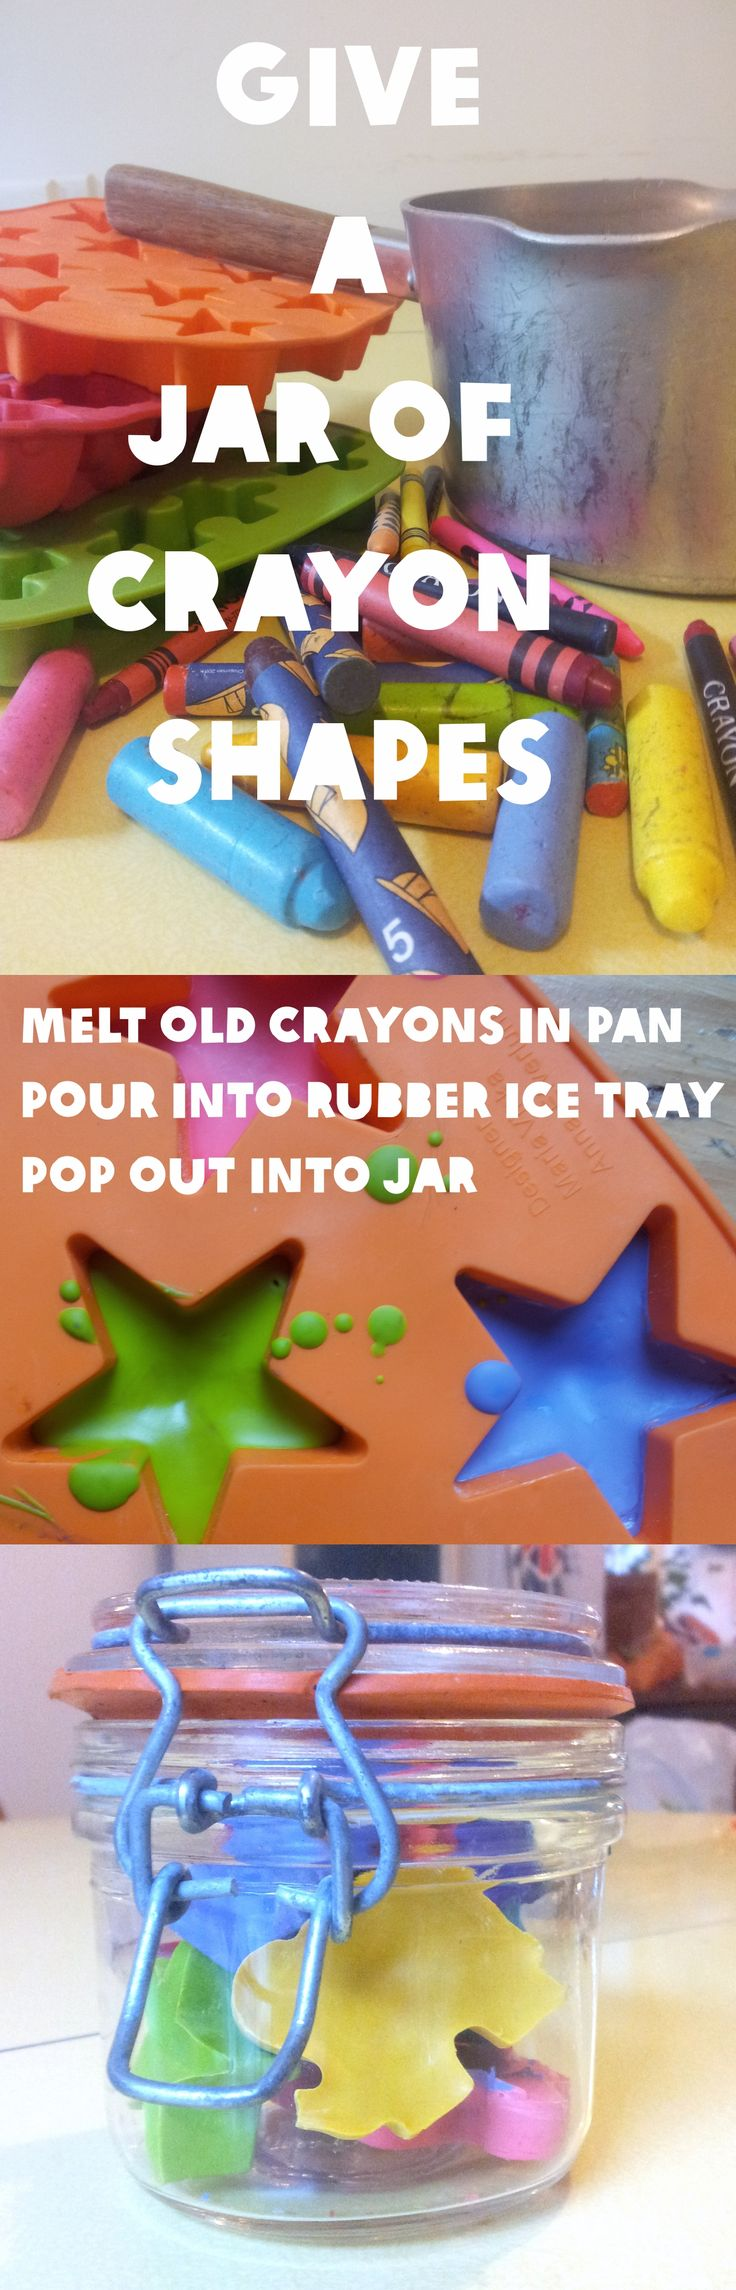 Thrifty Gifts: a jar of crayon shapes « Lulastic and the Hippyshake